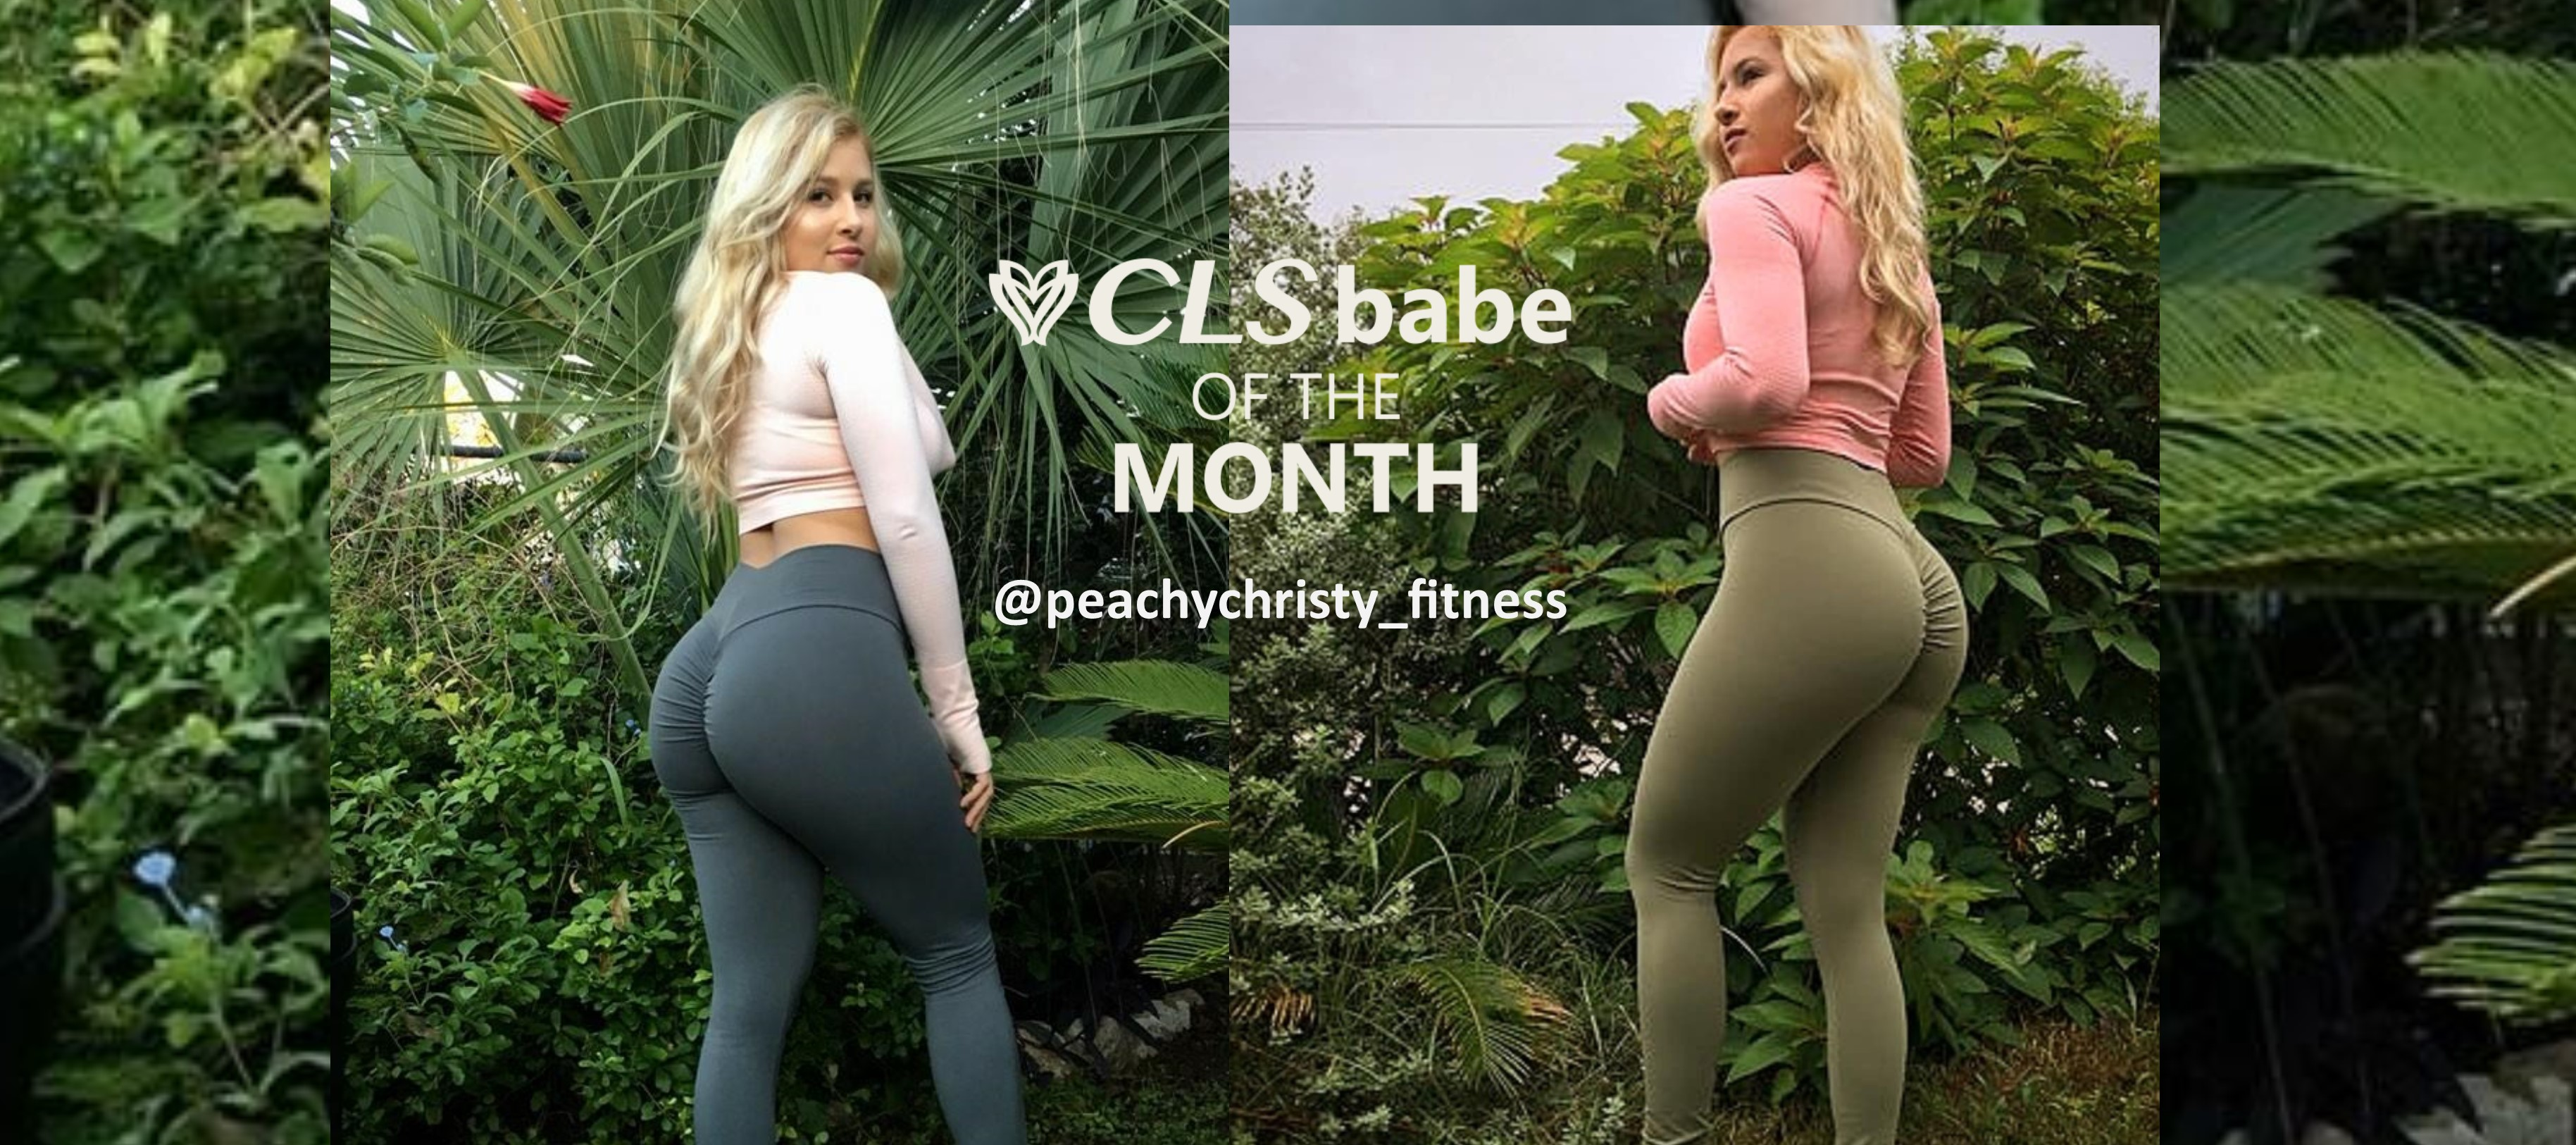 https://www.clssportswear.com/wp-content/uploads/2018/11/CLS-Babe-of-the-month-Nov2018.jpg